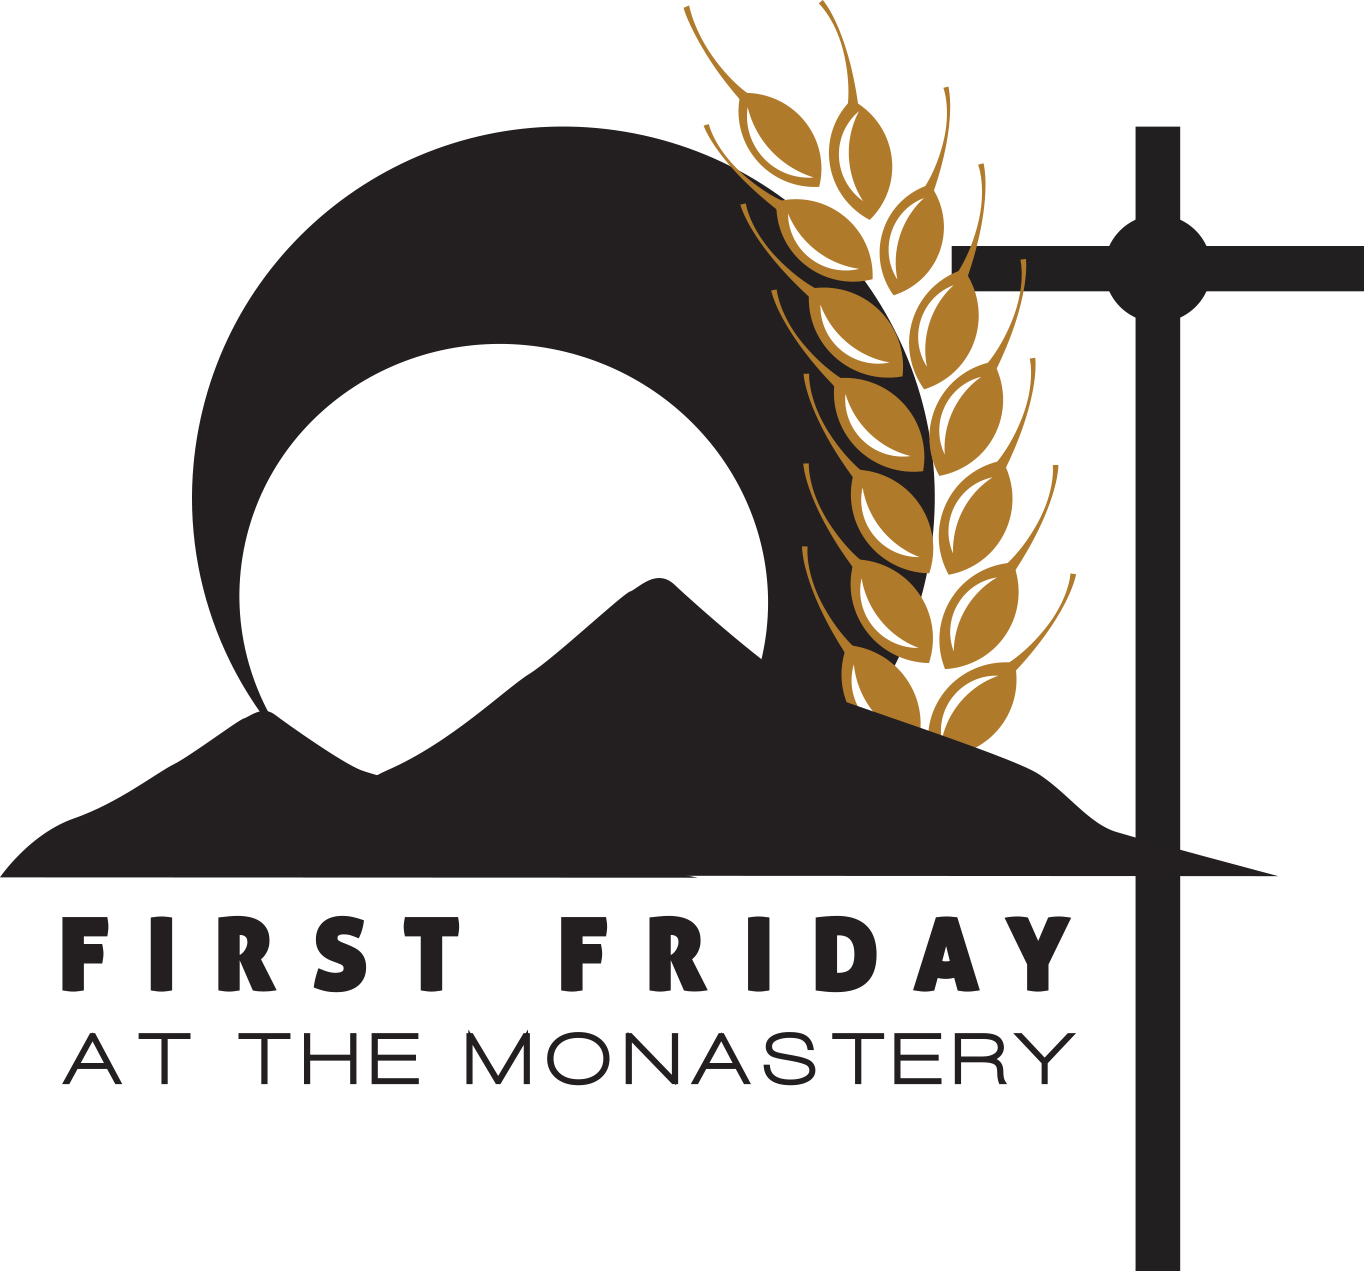 First Friday at the Monastery - OCT. 2016